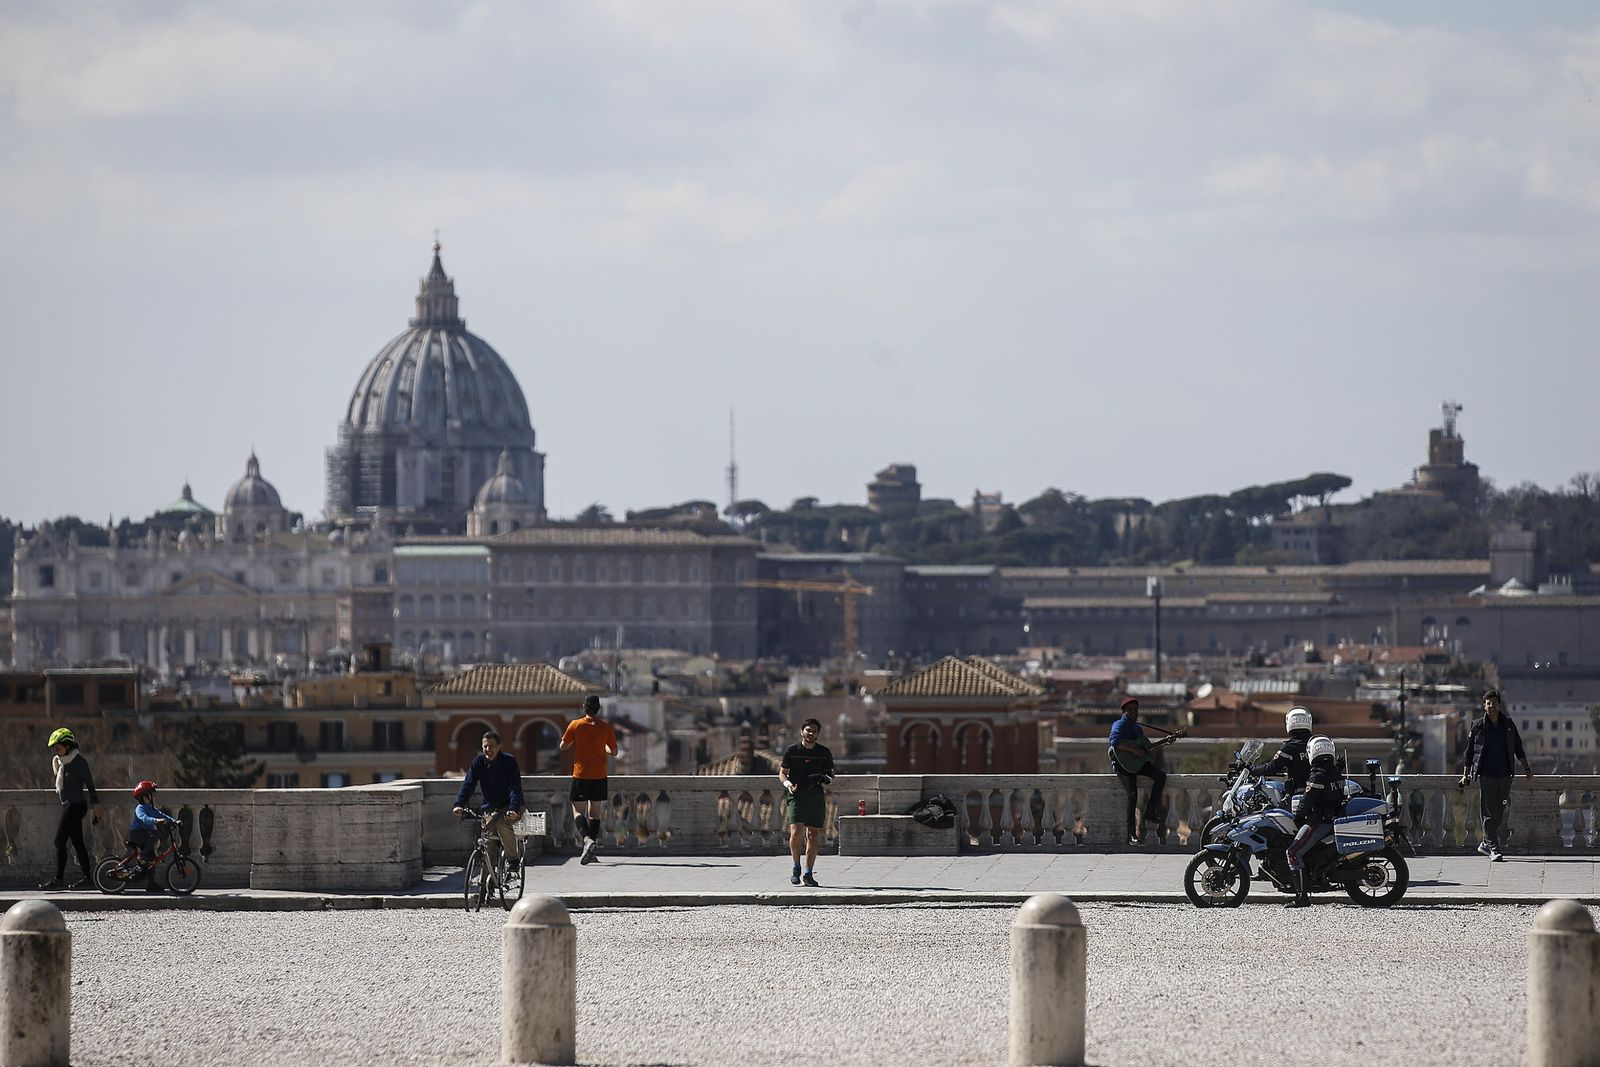 Coronavirus - First sunday in Rome after restrictions, Italy - 15 Mar 2020